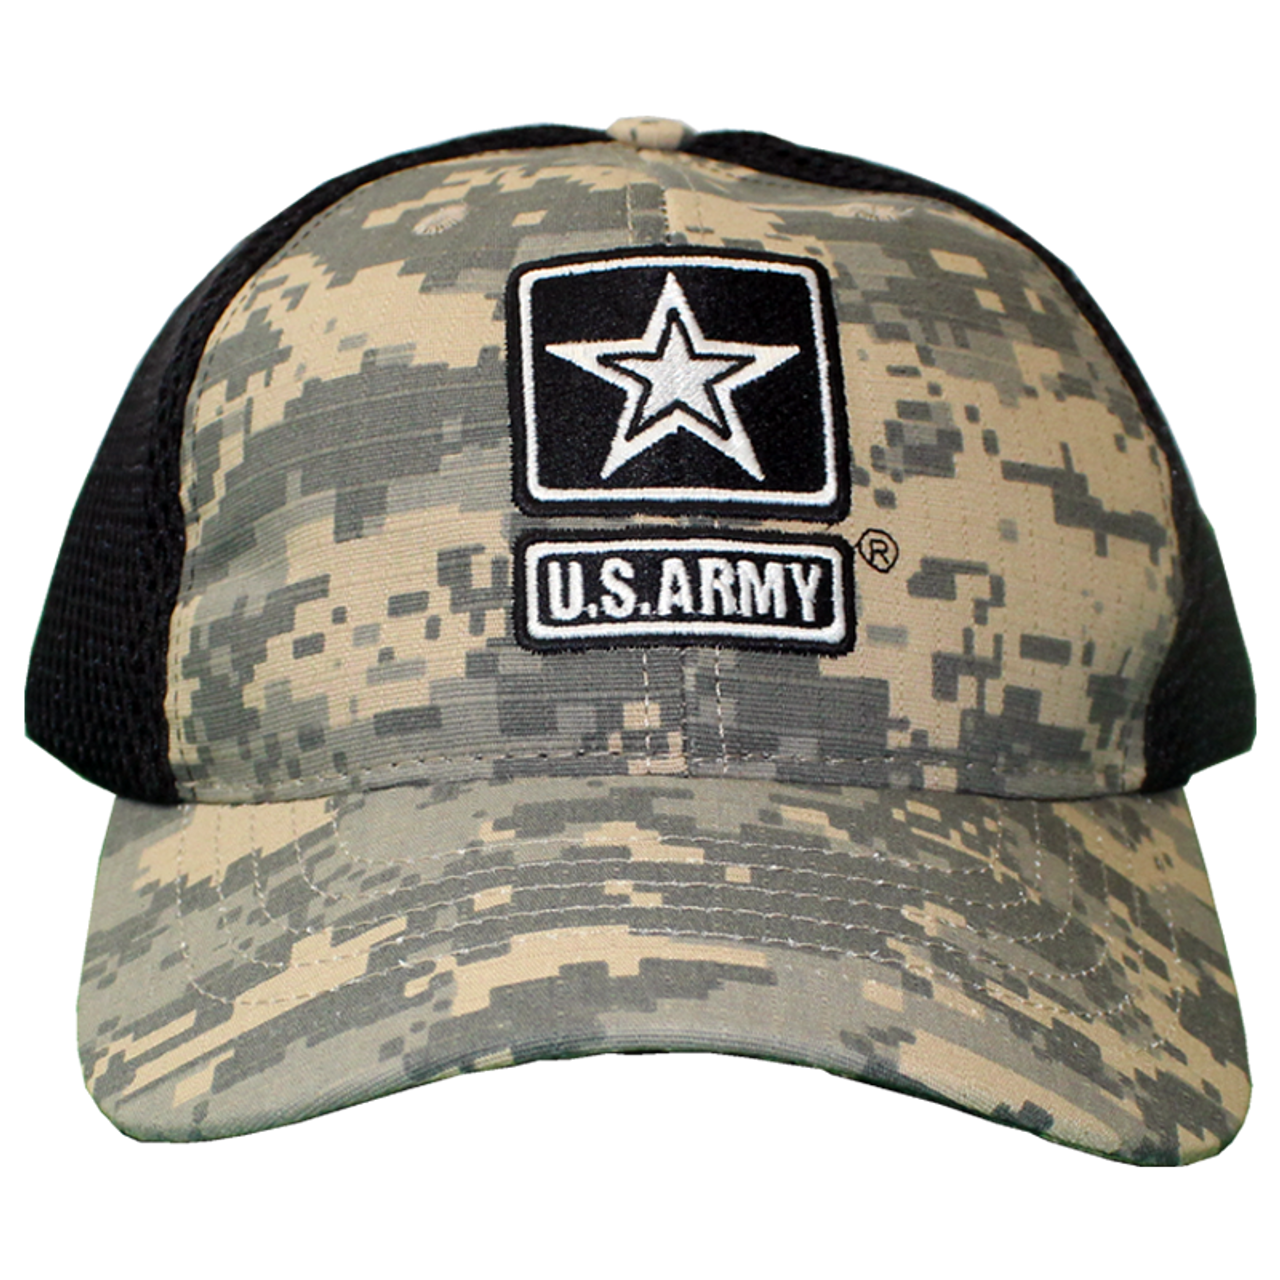 Military Cap US Army Hat Camo Army Hat Officially Licensed US Army Cap Embroidered Army Cap US Army Cap Army Cap Camouflage Army Cap